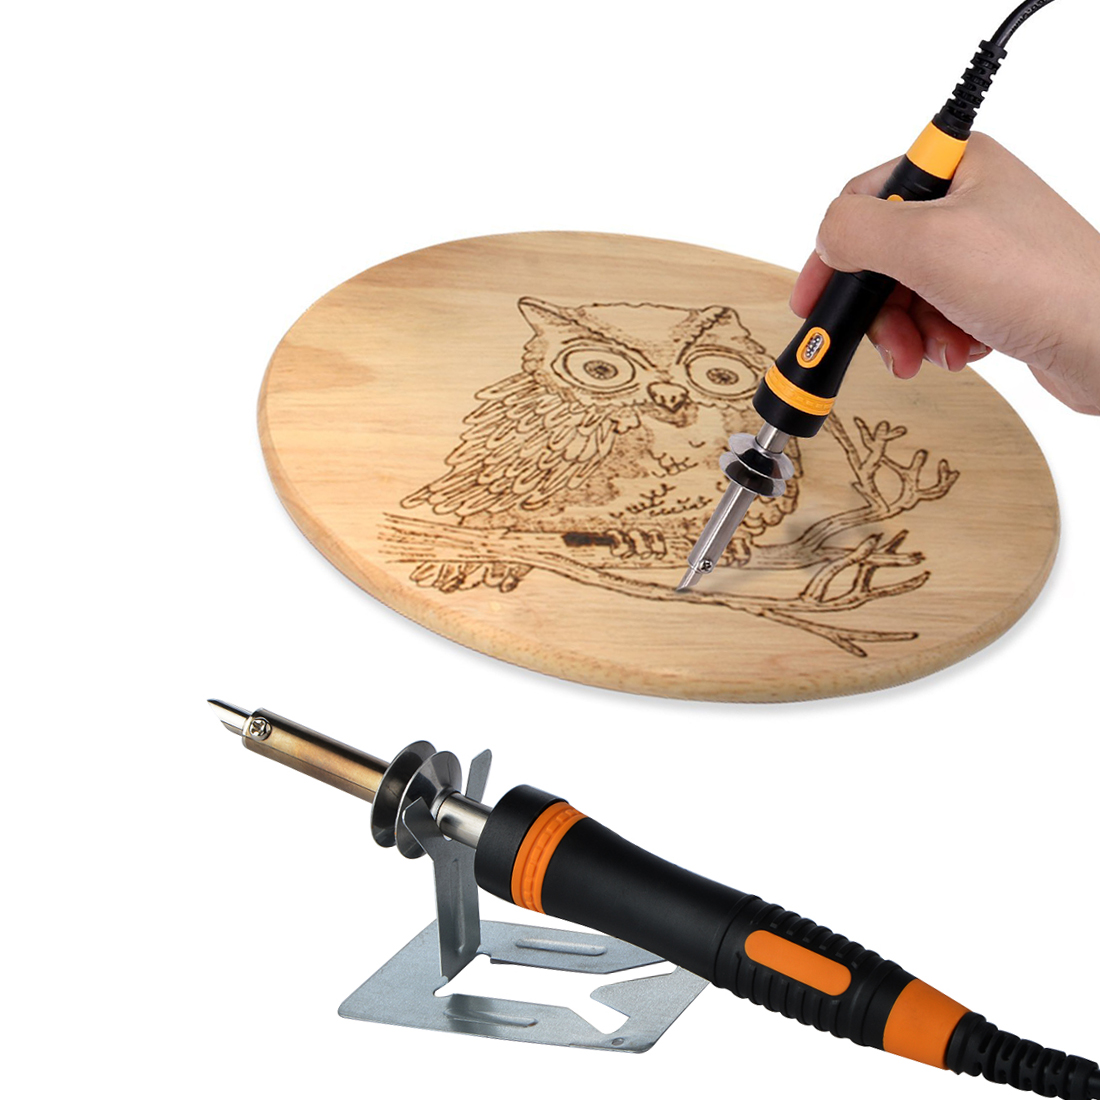 220V 30W Soldering Iron Carving Pyrography Tool Wood Working Burning Pen Welding Tips